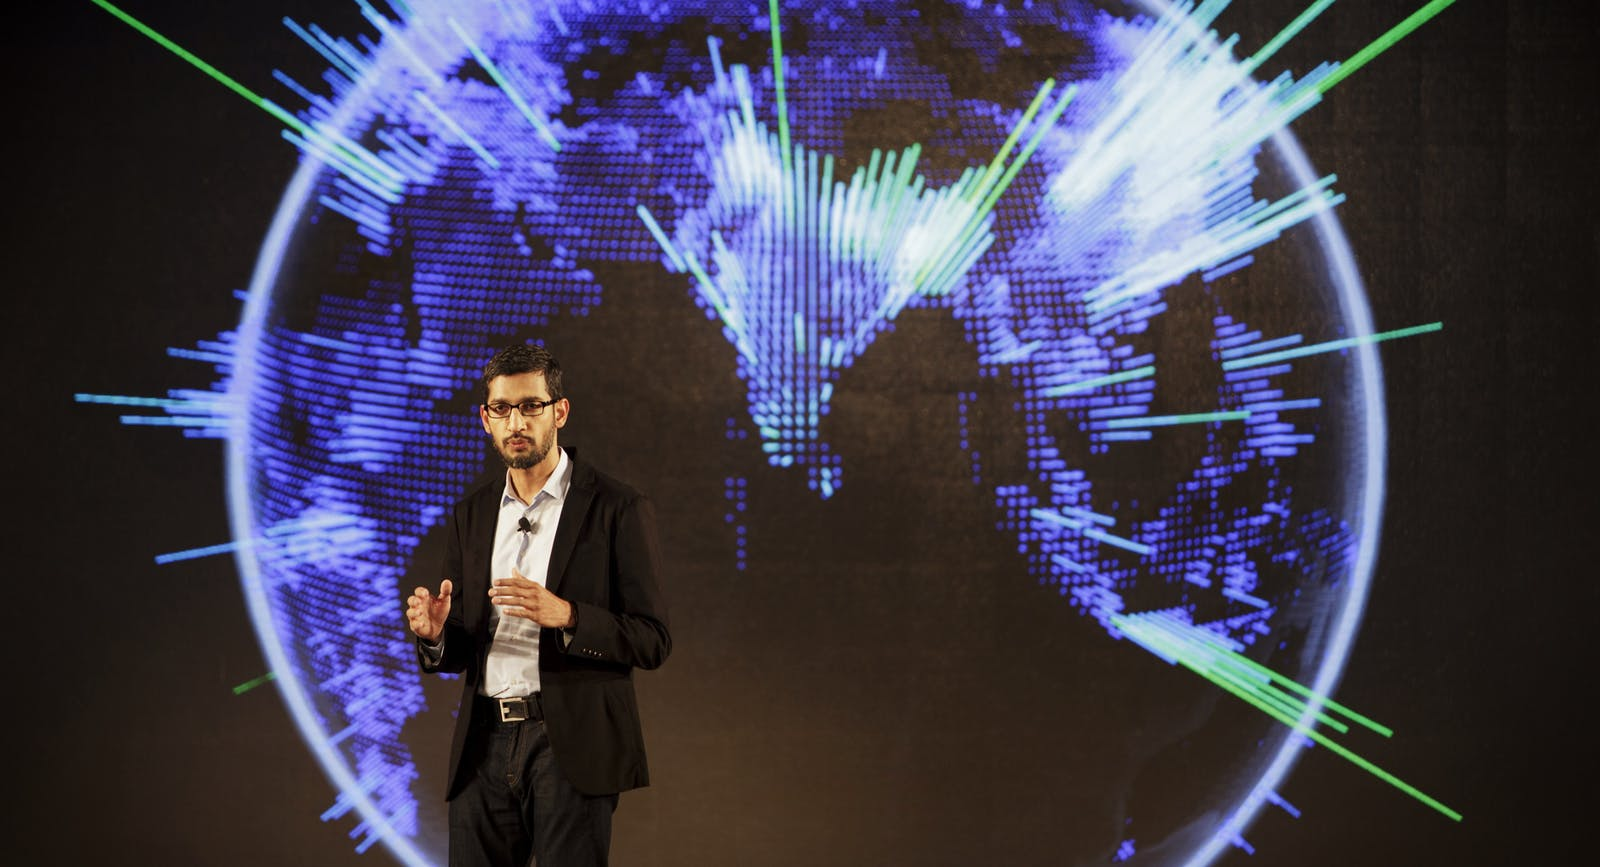 Google's Sundar Pichai, who oversees Android. Photo by Bloomberg.